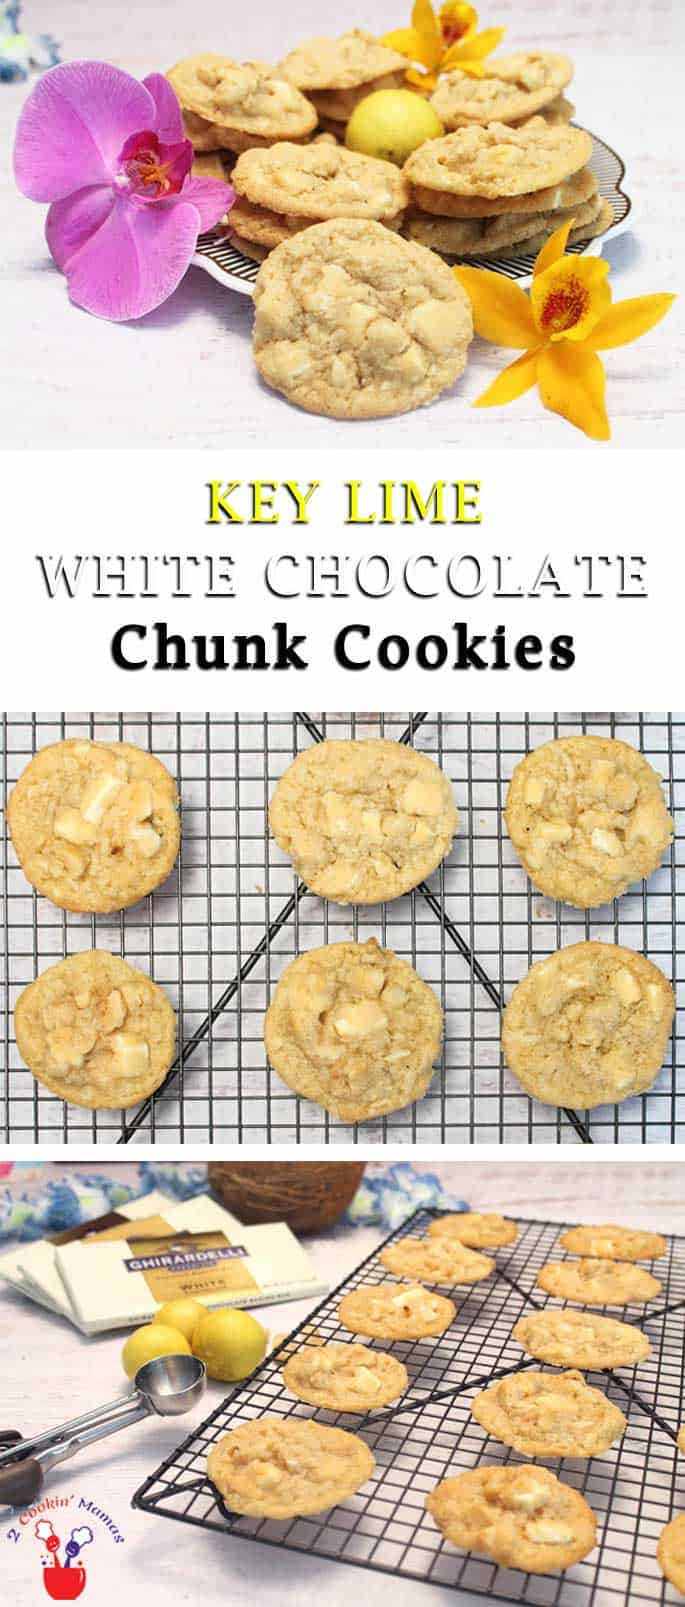 These key lime cookies have a refreshing hint of lime & are chock full of white chocolate, coconut and macadamia nuts. The perfect tropical cookie get-away! #cookies #keylime #macadamianuts #coconut #whitechocolate #summercookies